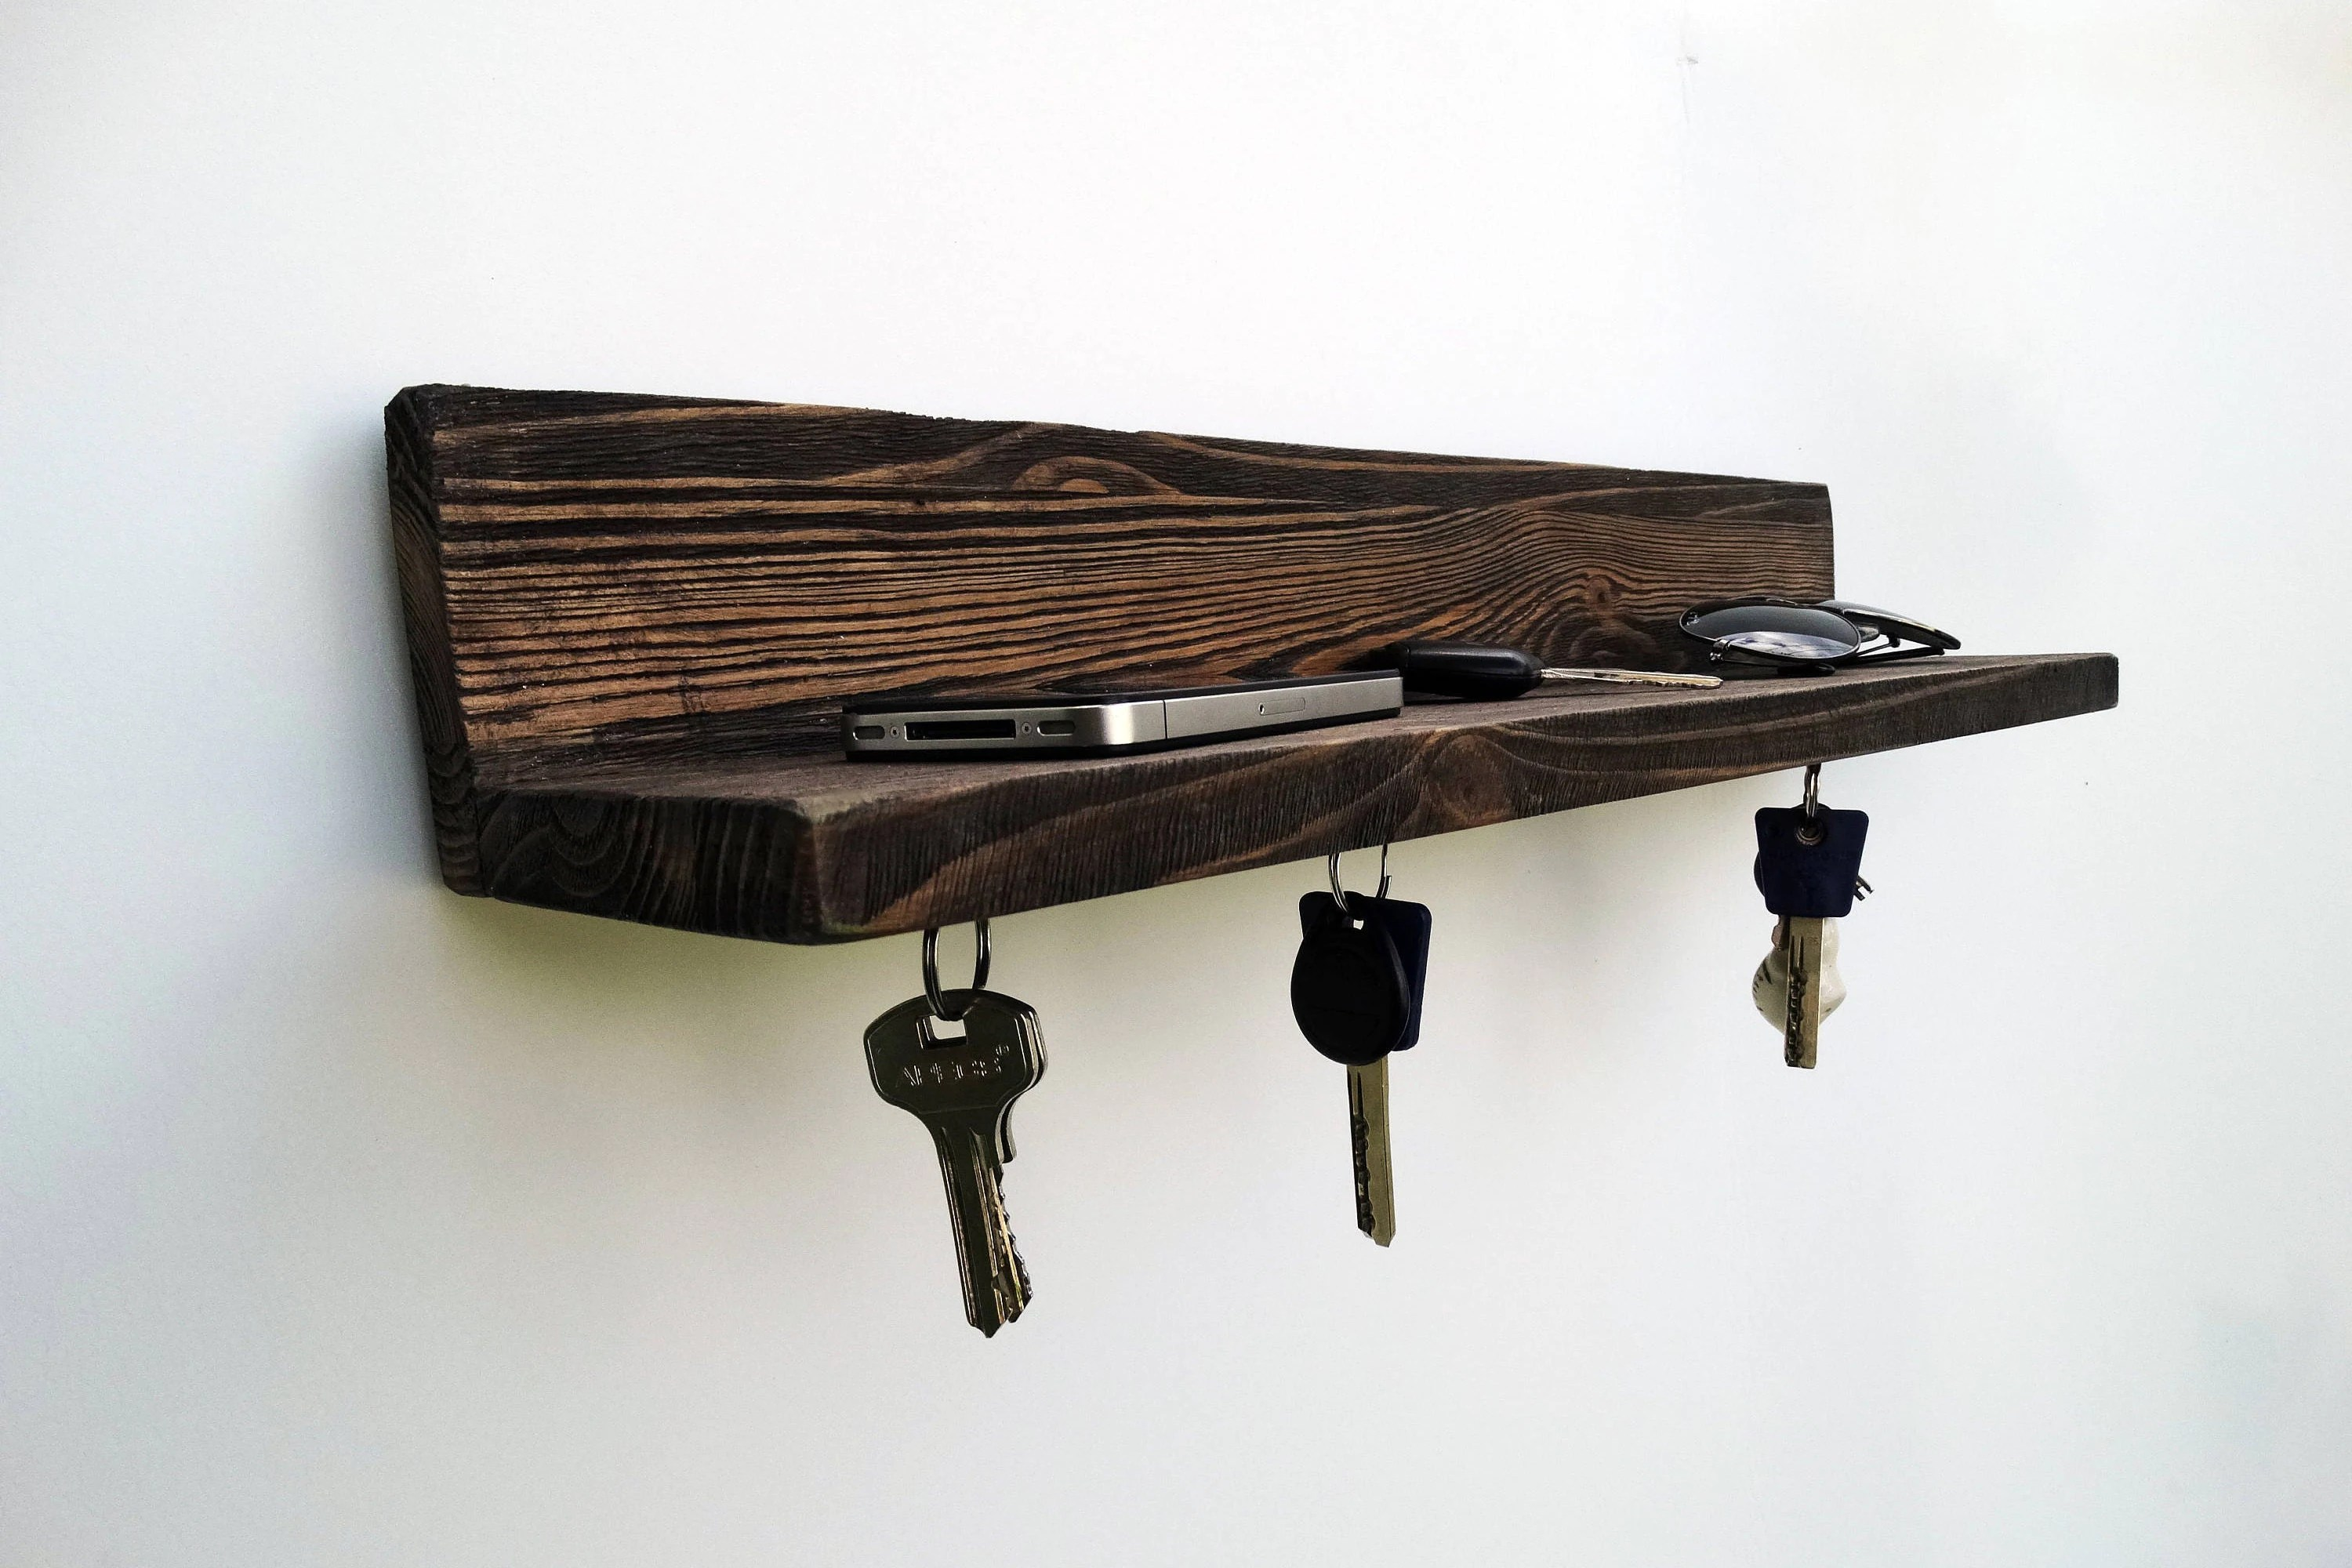 Wooden Key Holder With Shelf Wall Shelf Wood Shelf Wall Key Holder Key Hanger Key Rack